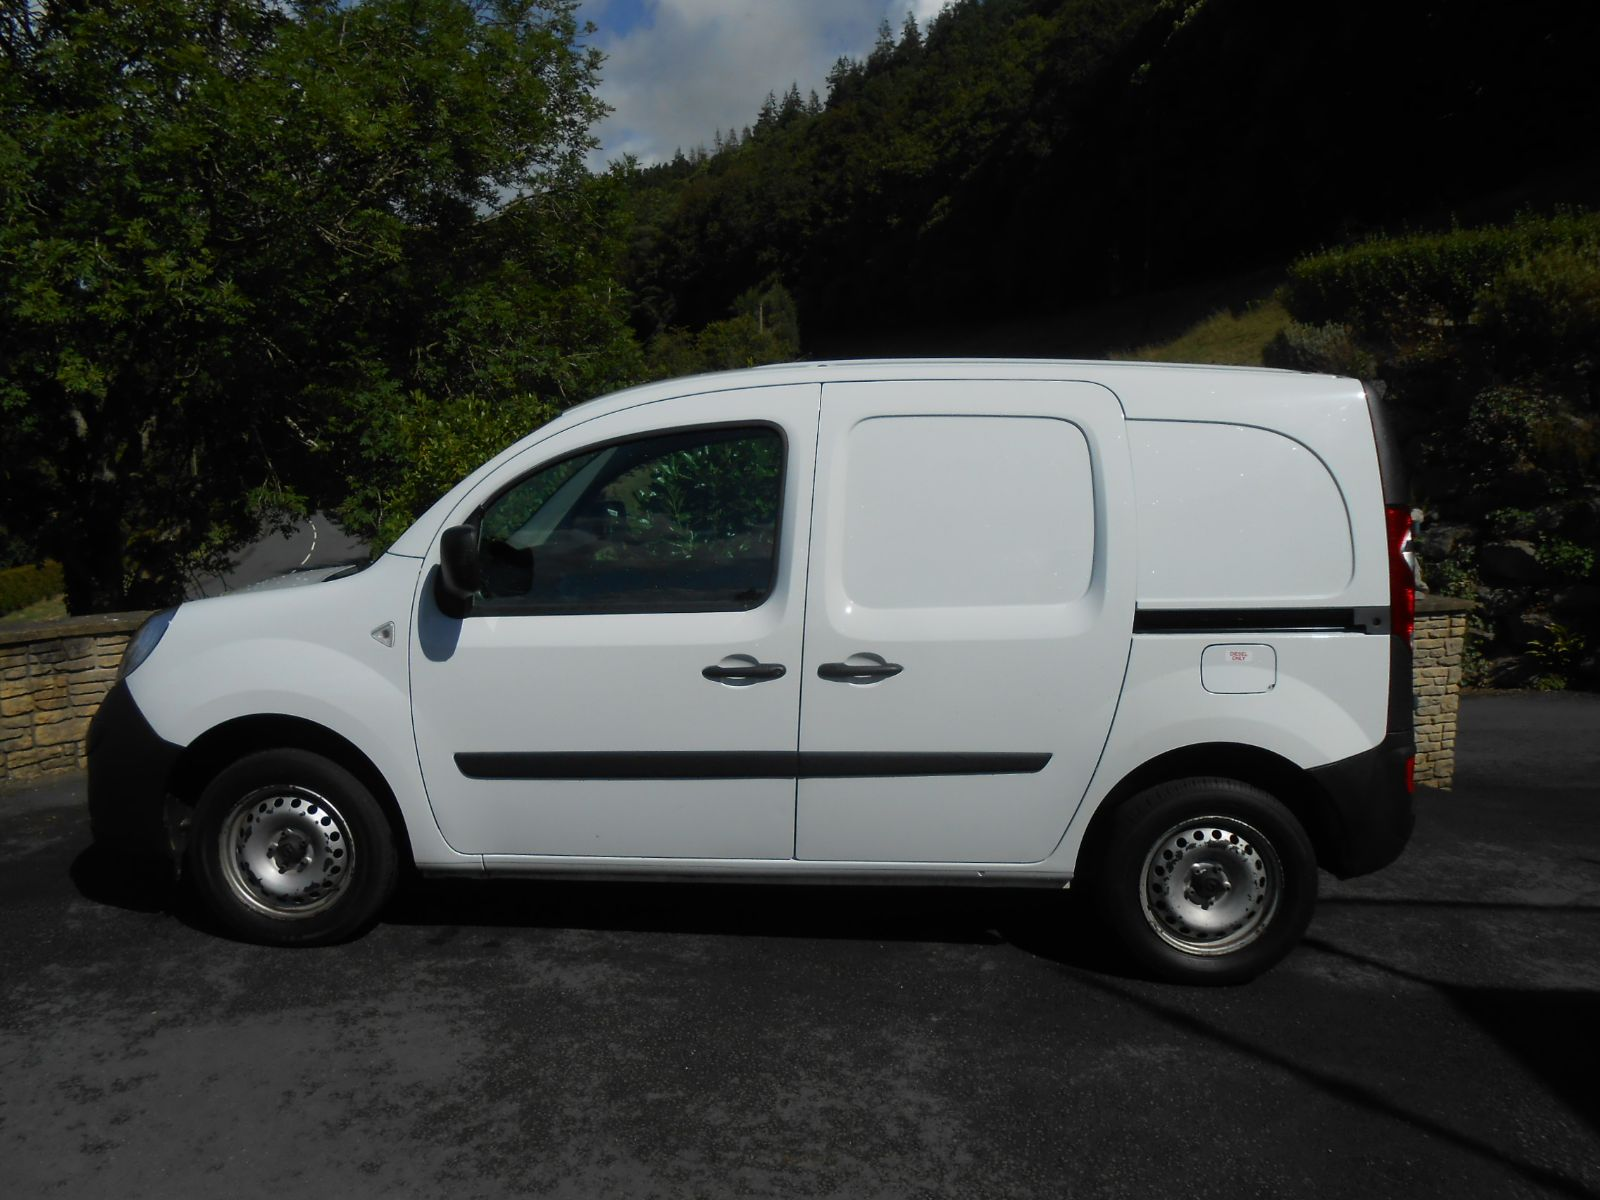 renault kangoo 1 5 dci ml19 car for sale llanidloes powys. Black Bedroom Furniture Sets. Home Design Ideas